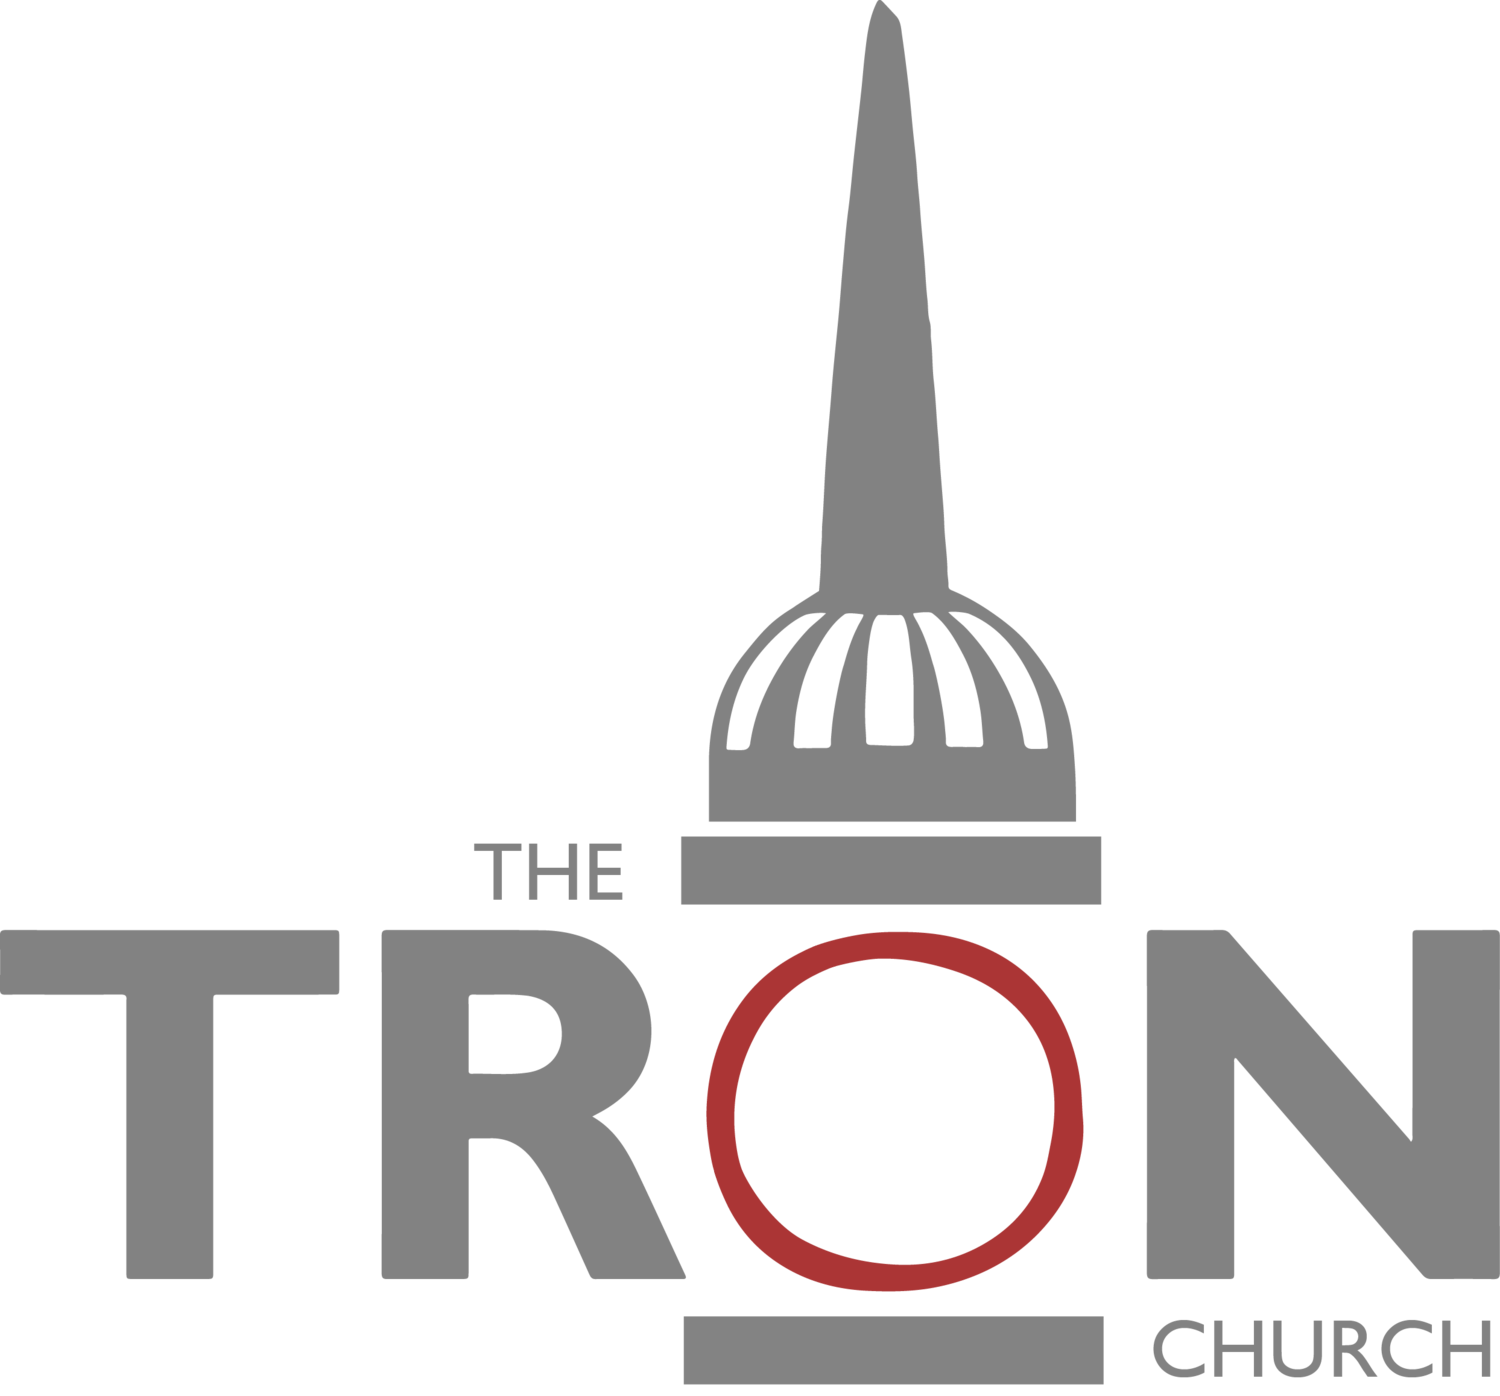 The Tron Church